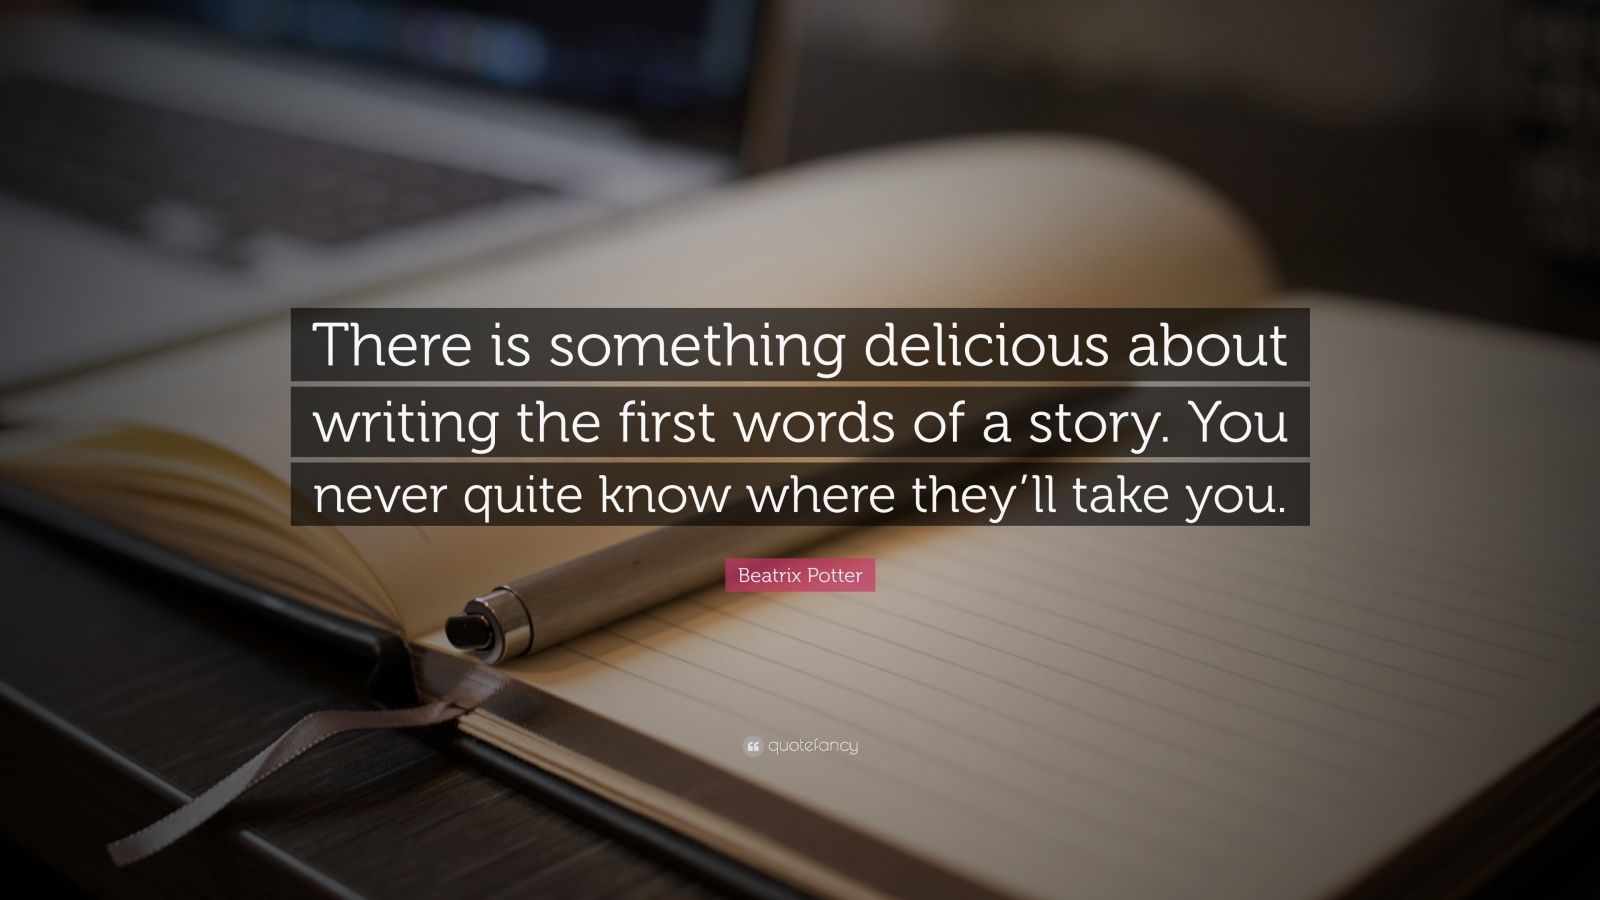 "Quotes About Writing: ""There is something delicious about writing the first words of a story. You never quite know where they'll take you."" — Beatrix Potter"